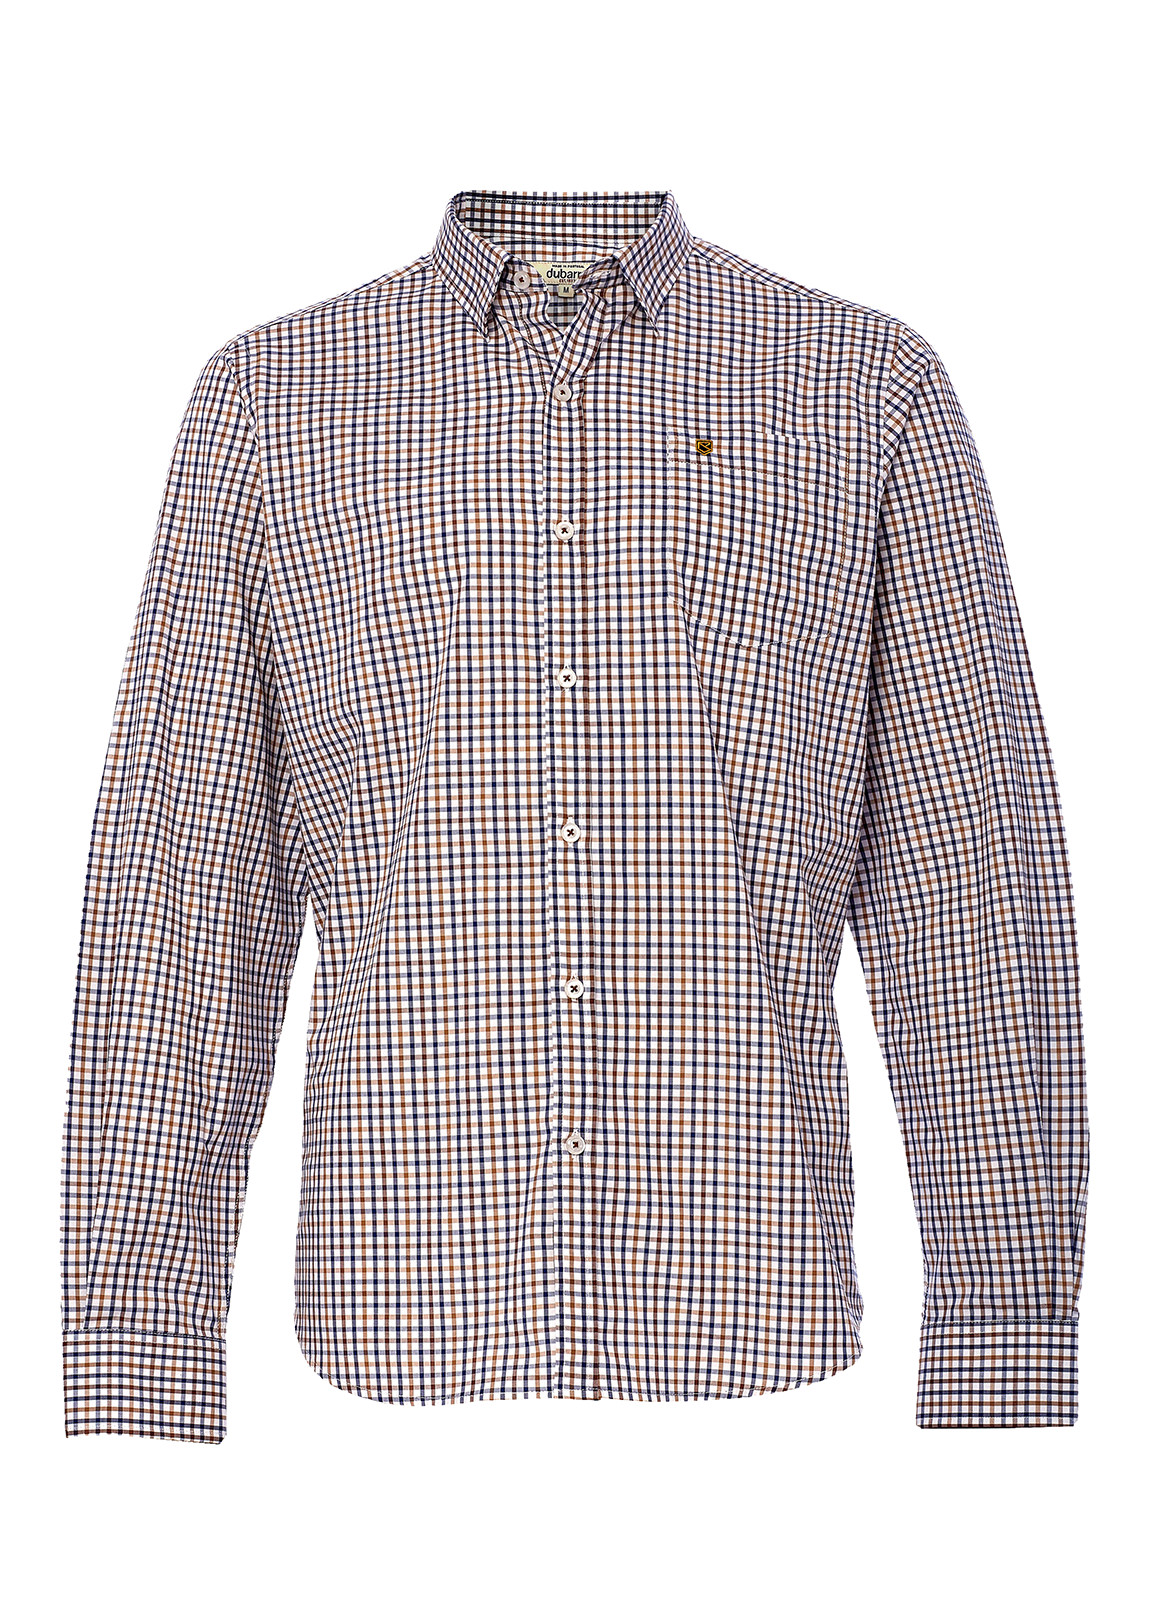 Dubarry_ Ballincollig shirt - Tobacco_Image_2